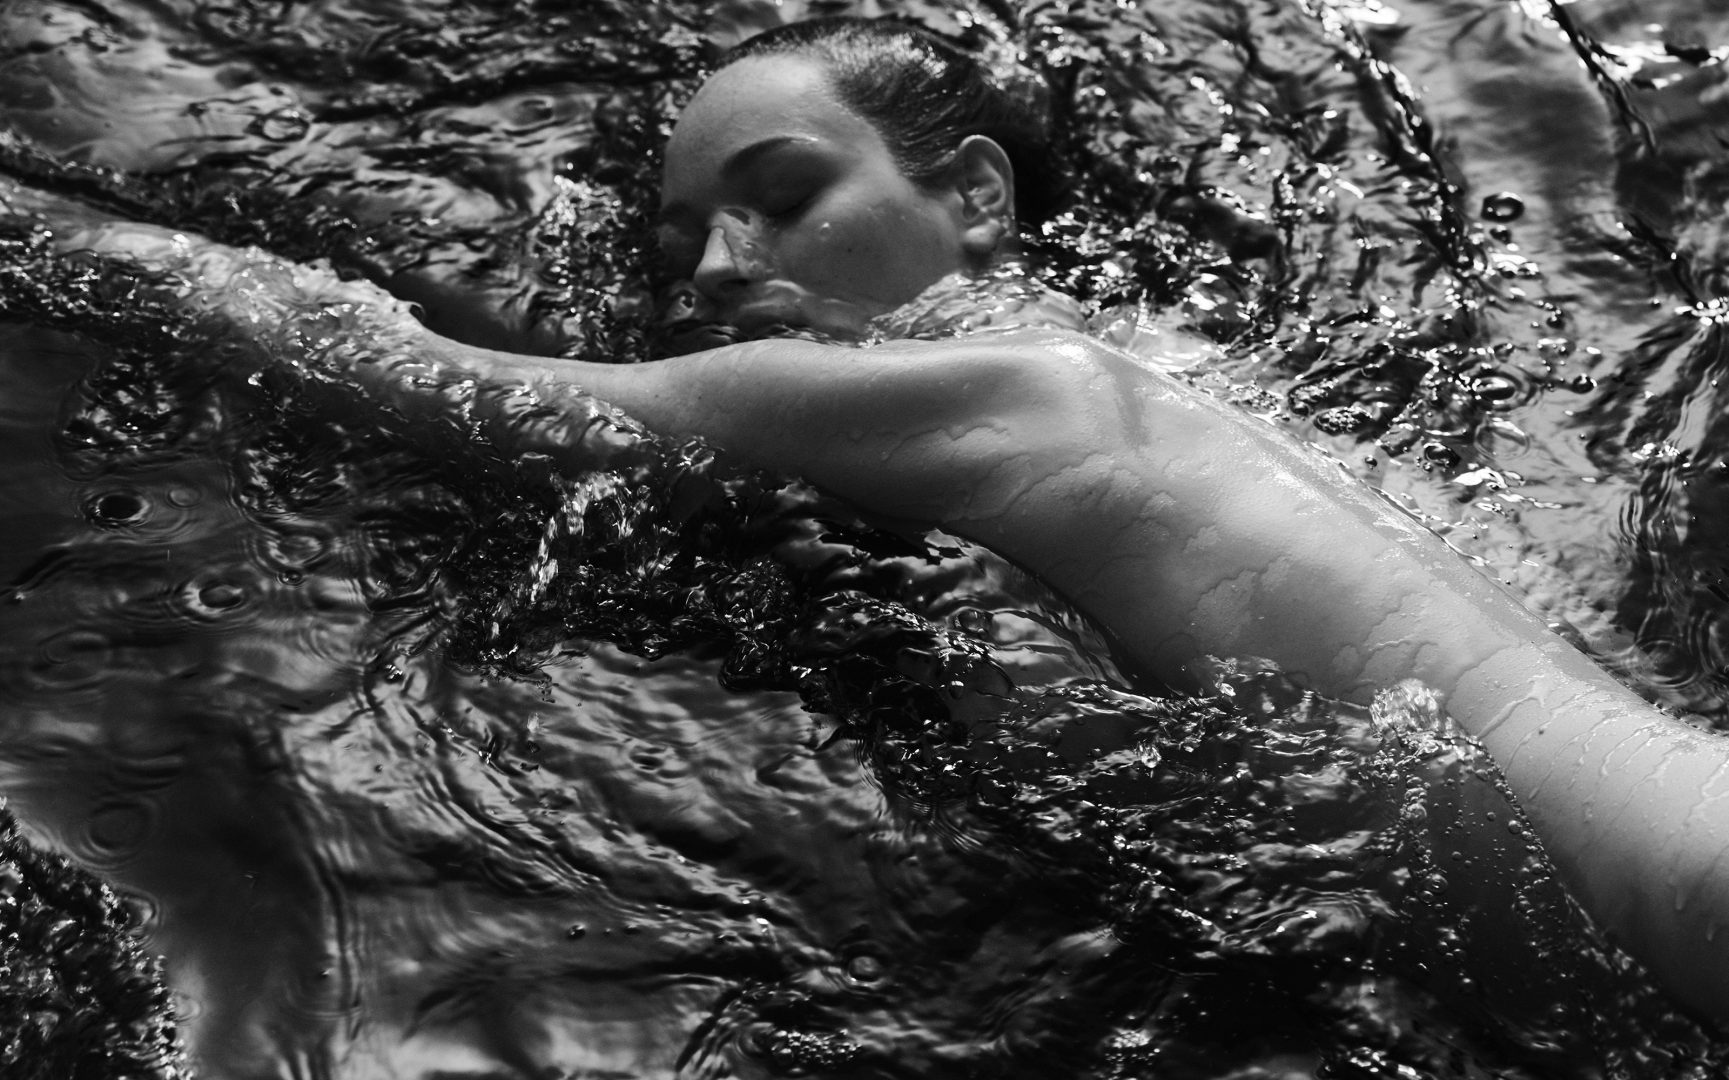 Naked girl merging in water by Stefan Rappo